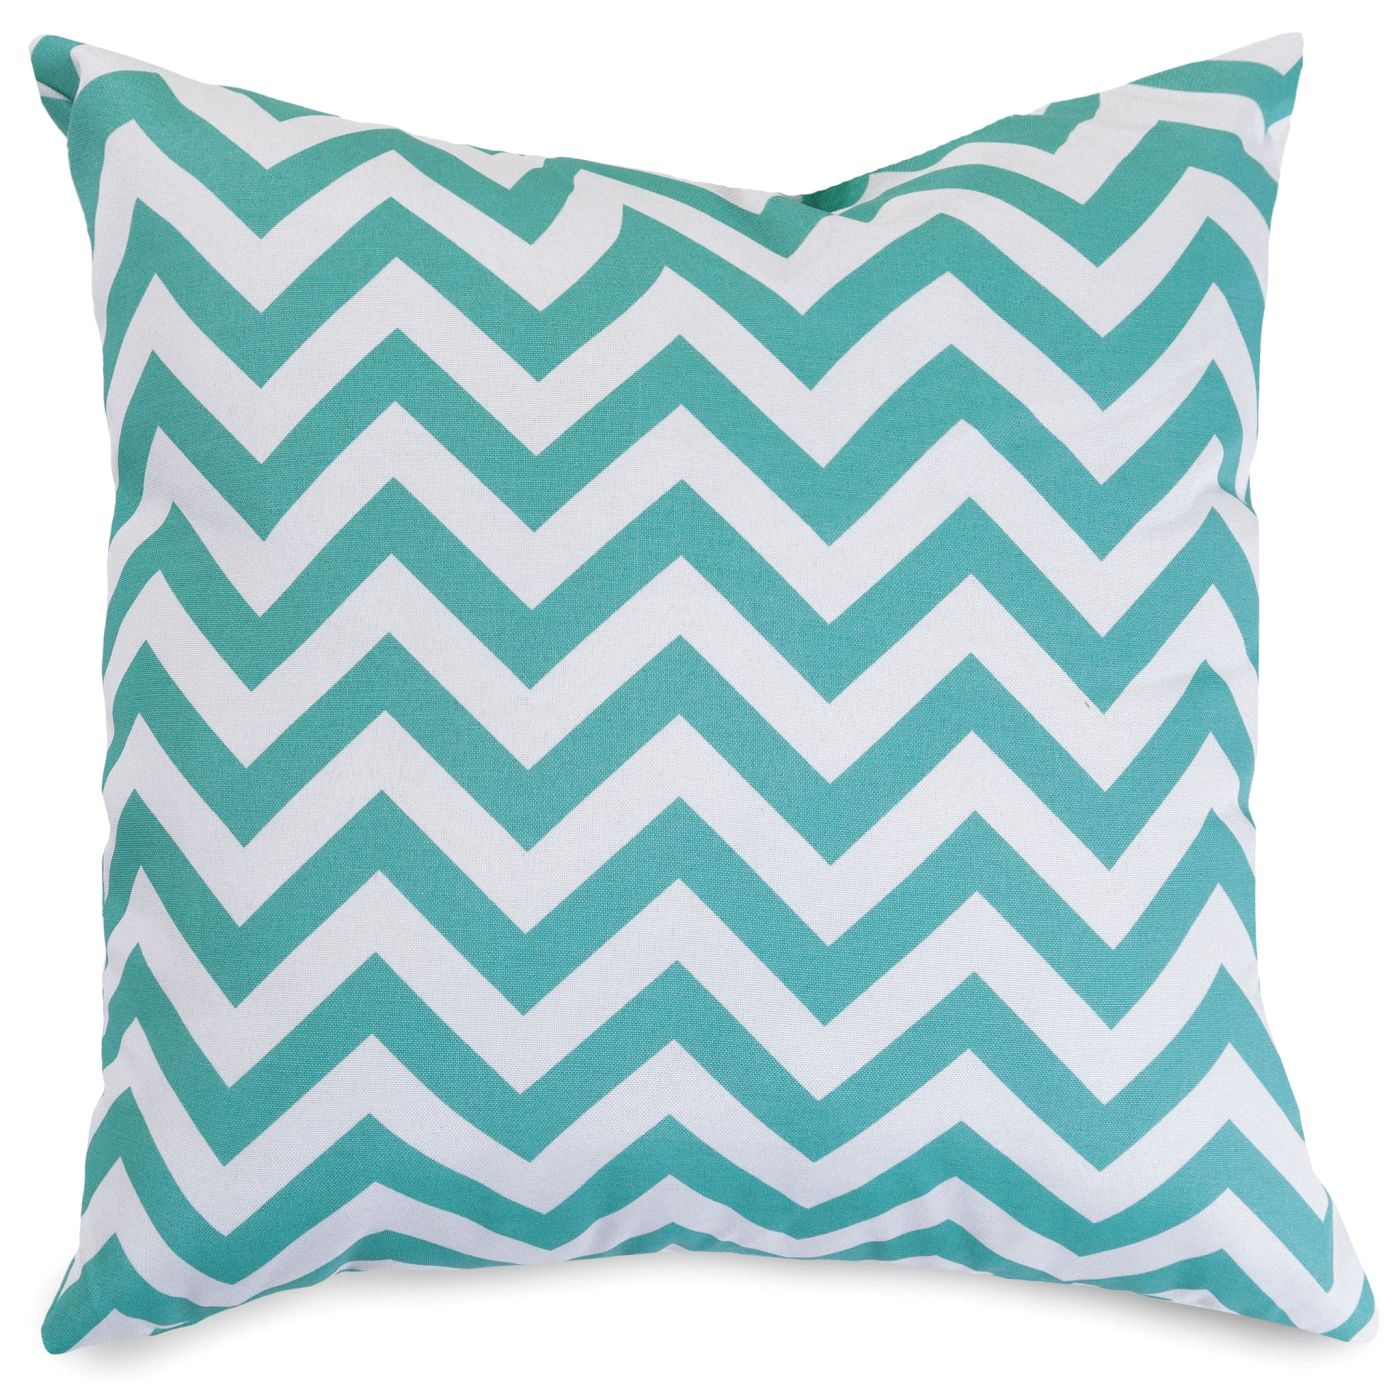 Giant Chevron Floor Pillows : Majestic Home Teal Chevron Large Pillow 85907220899. Only $42.90 at Contemporary Furniture ...